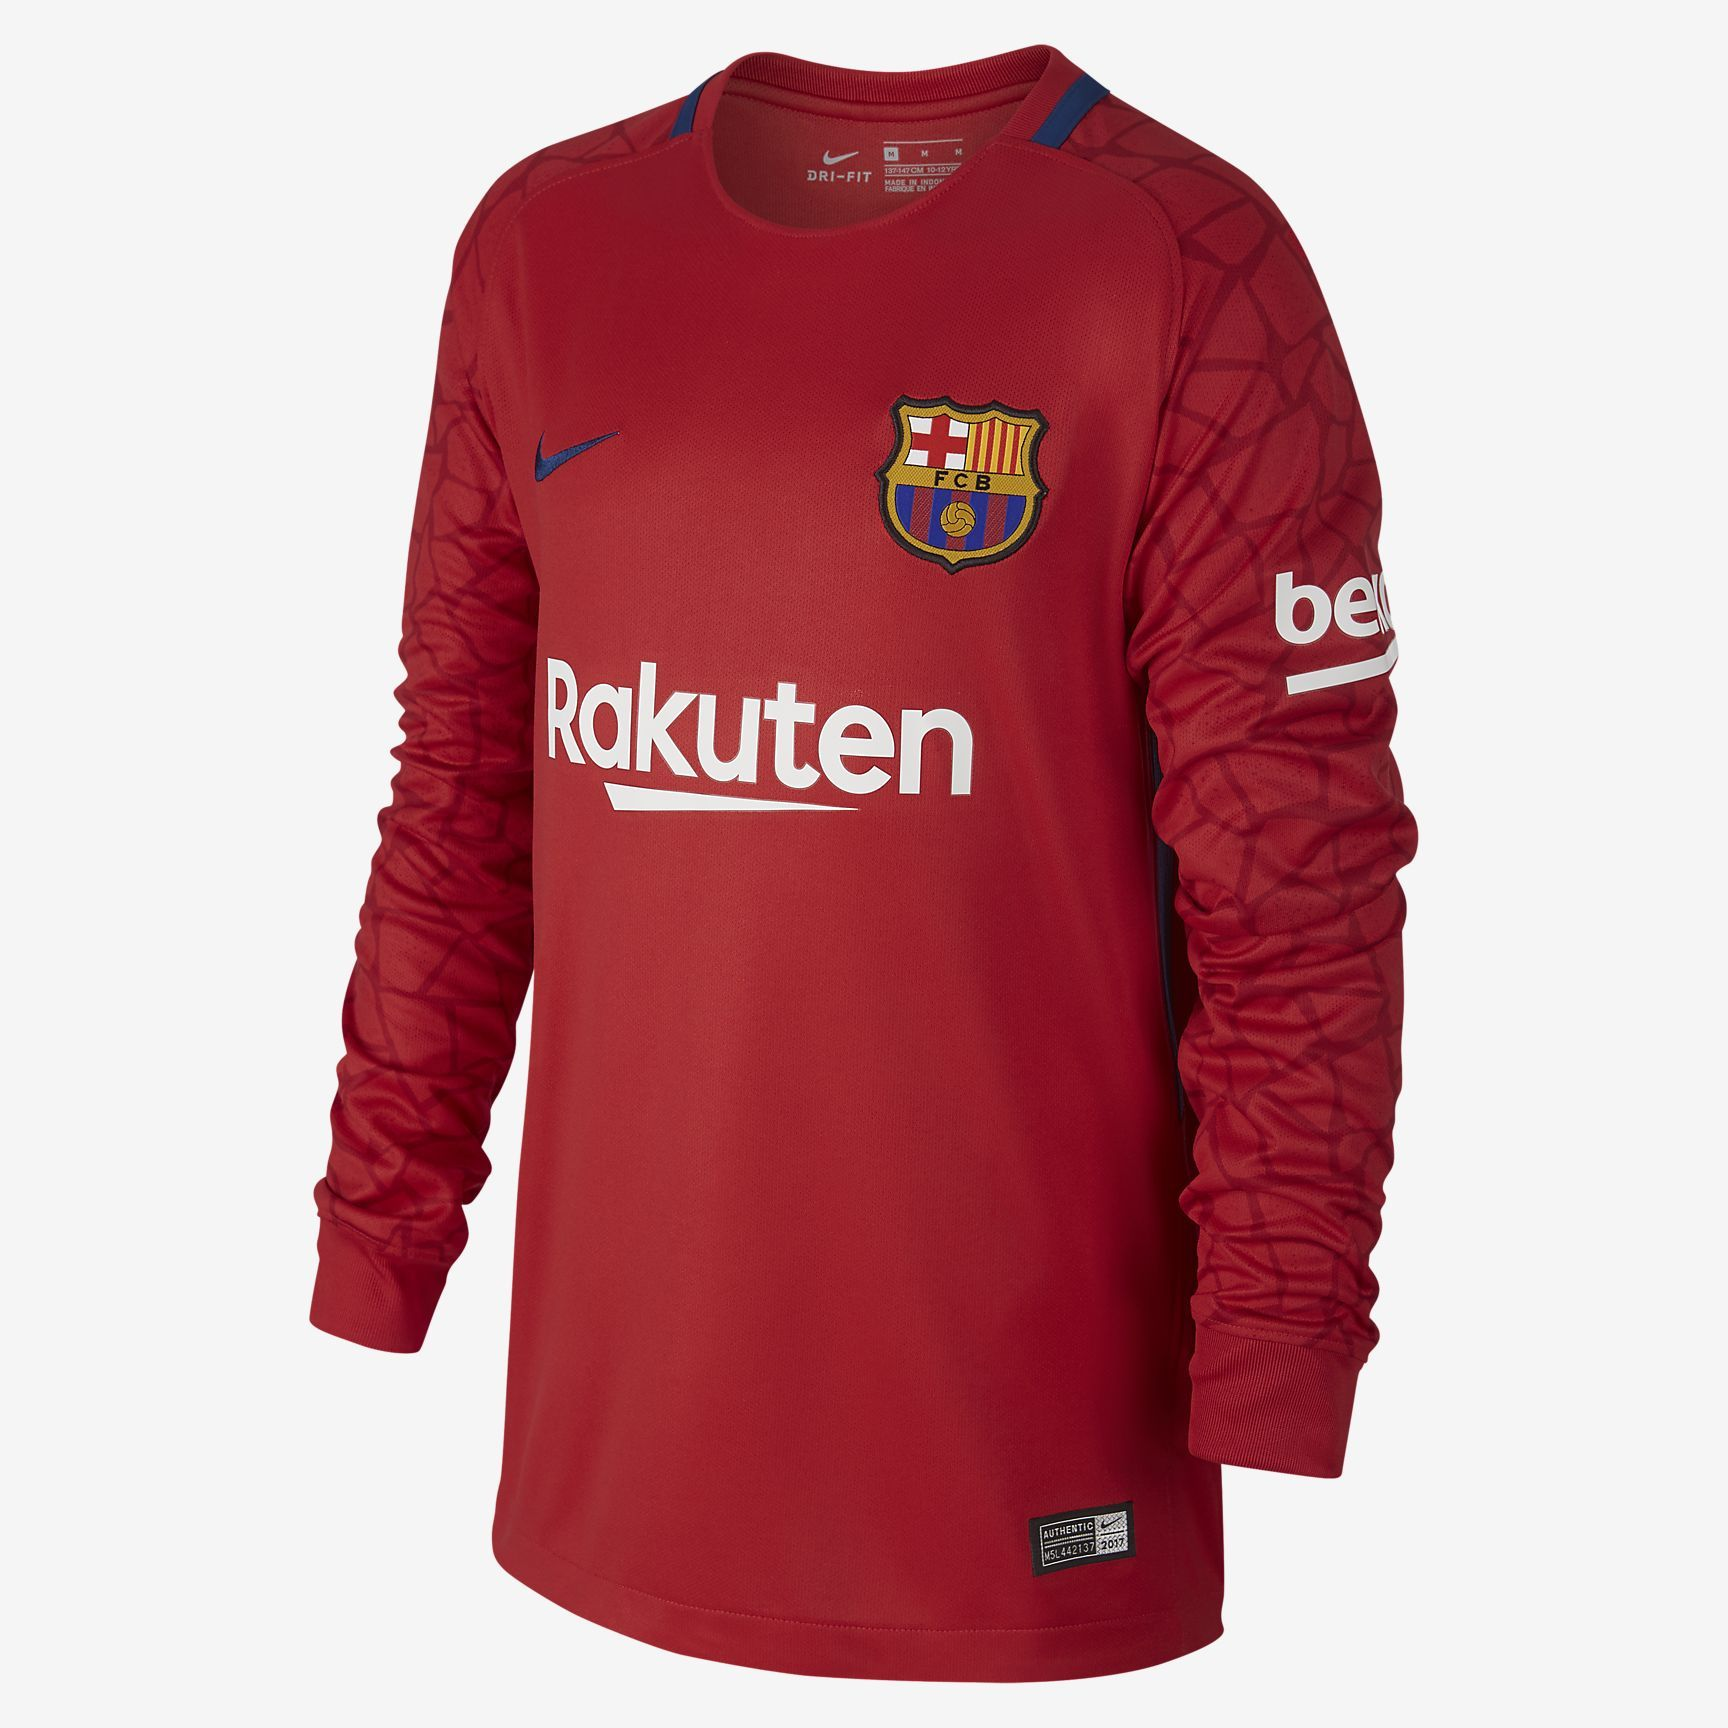 42c8b8e44 2017 2018 FC Barcelona Stadium Goalkeeper Older Kids  Long-Sleeve Football  Shirt